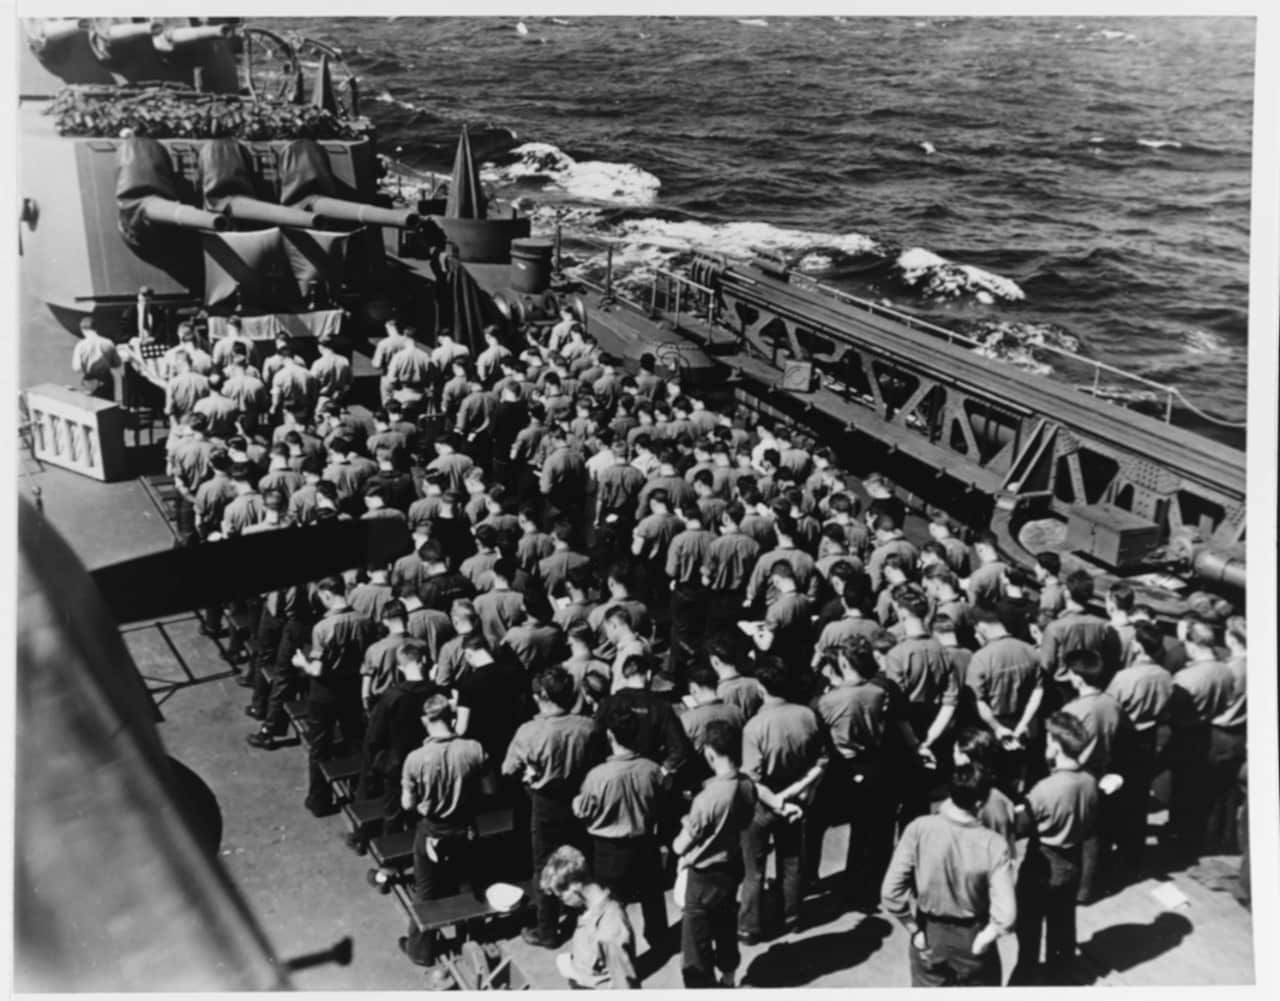 """USS Santa Fe (CL-60) crewmembers attend Thanksgiving Day services on the ship's after deck under a 6"""" gun turret, probably during the Gilberts campaign in November 1943 (Photo: National Archives)"""